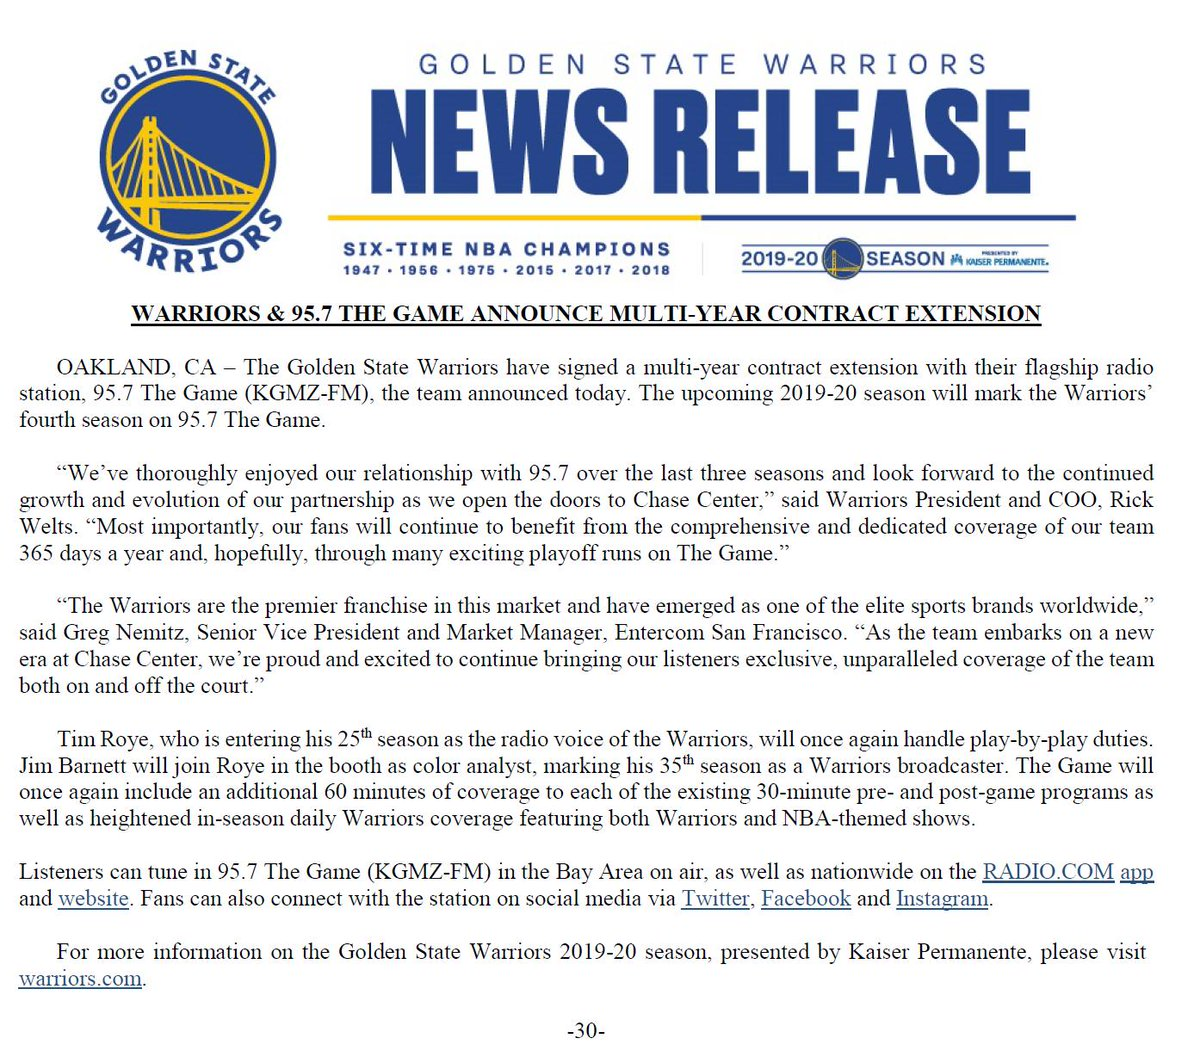 image regarding Golden State Warriors Printable Schedule named Warriors PR (@WarriorsPR) Twitter